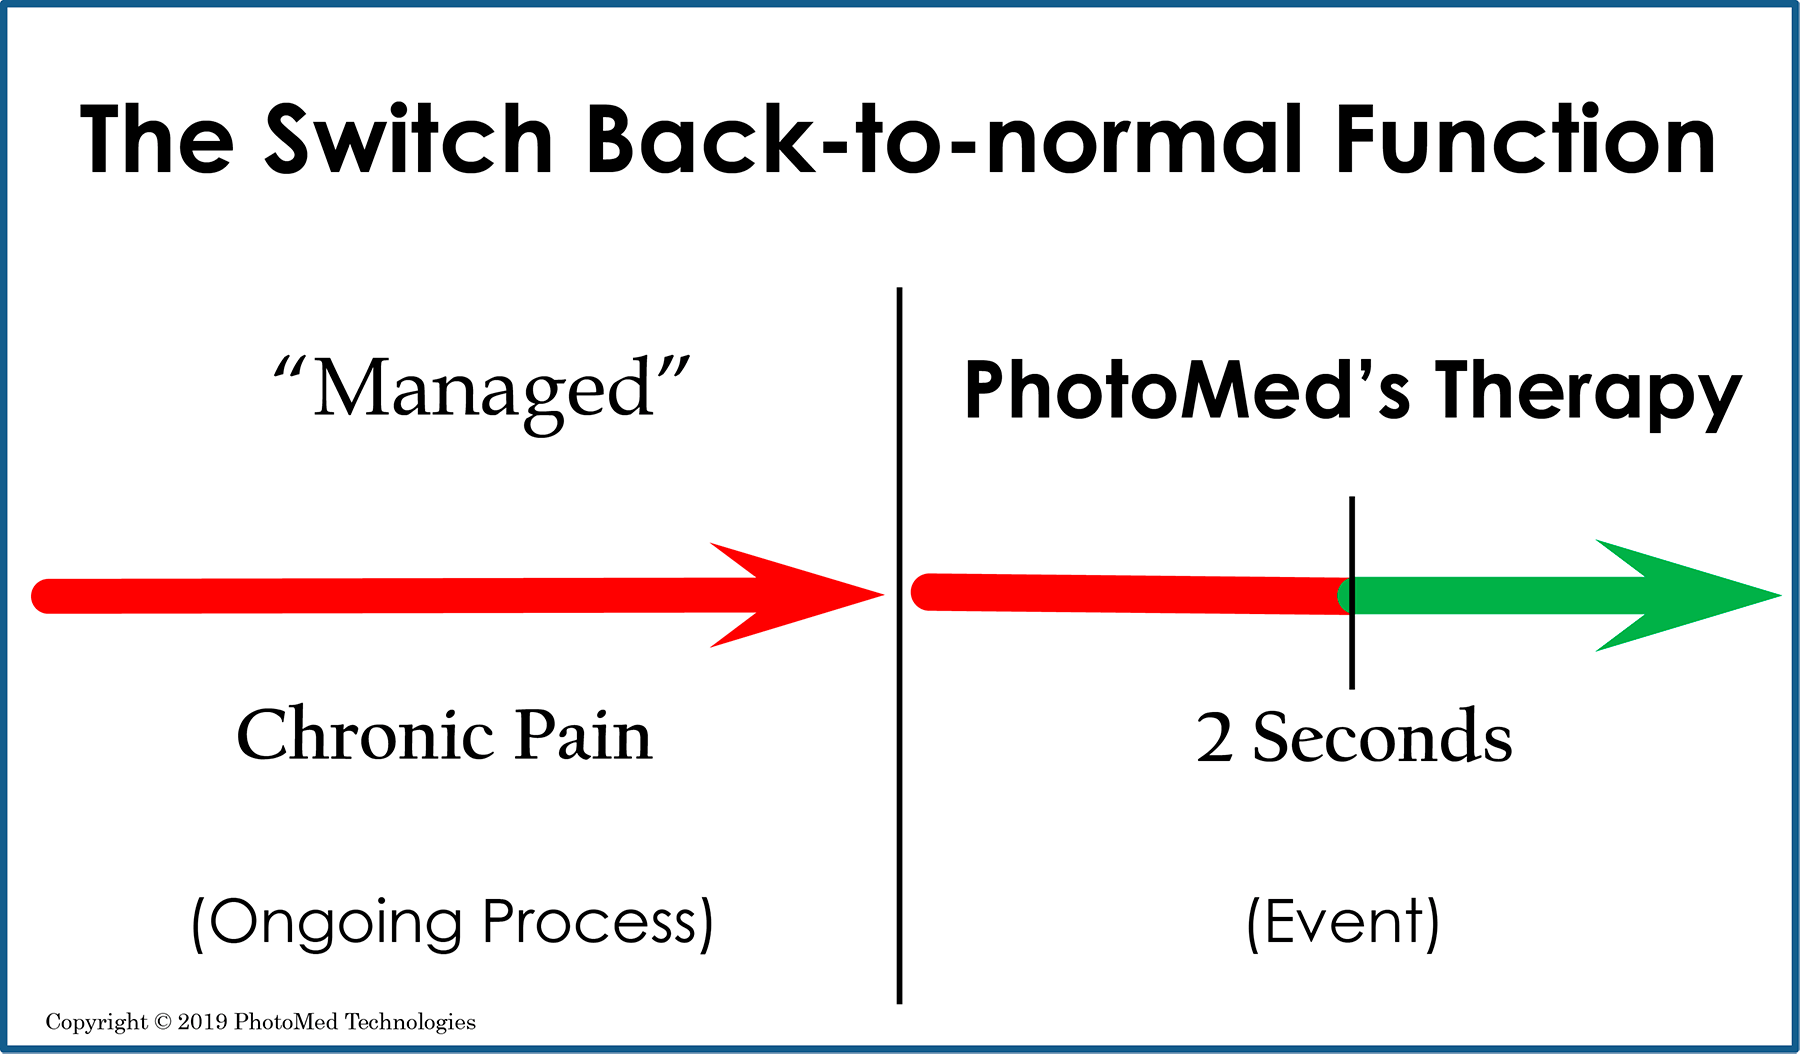 """Consider that a """"managed"""" level of pain is an ongoing process in the presence of an active agent.  PhotoMed's tools prompt and document the  back-to-normal  event. The prompting agent (light) is not present after therapy ends."""